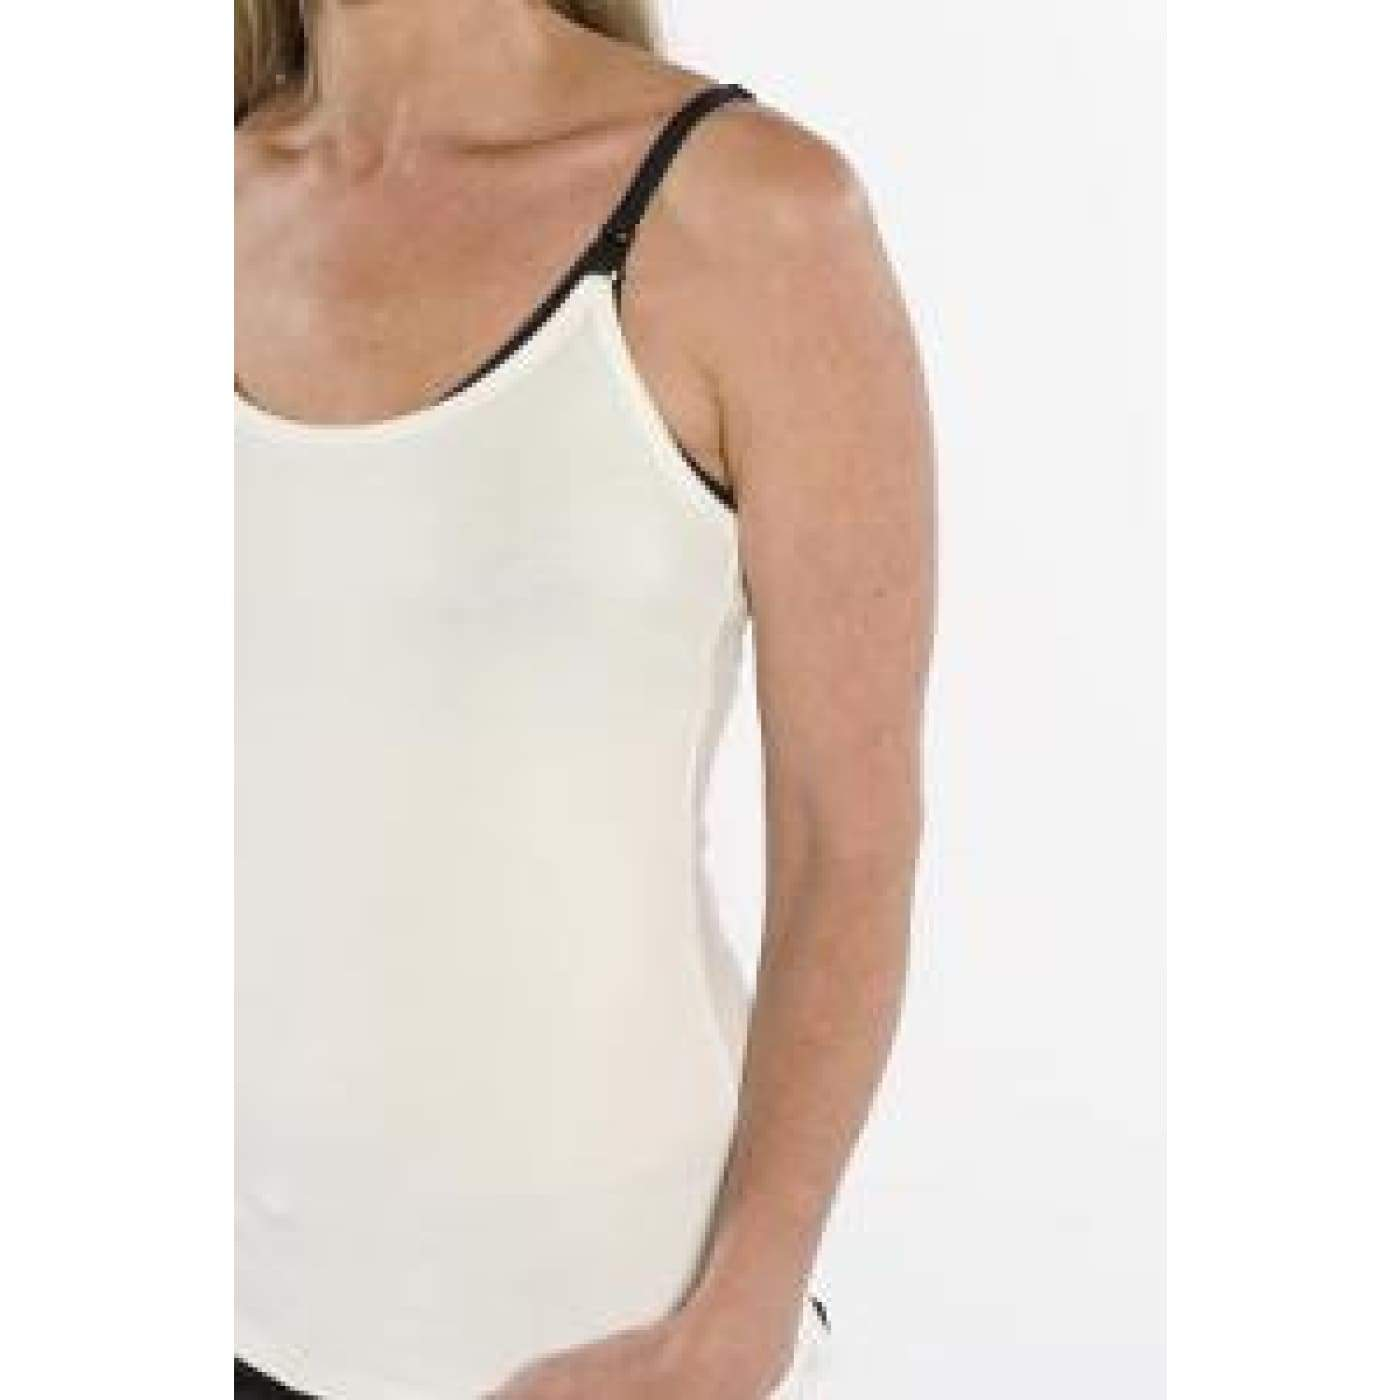 Inspired Mother Nursing Cami - XS White - Maternity Bras Cami Tops & Underwear